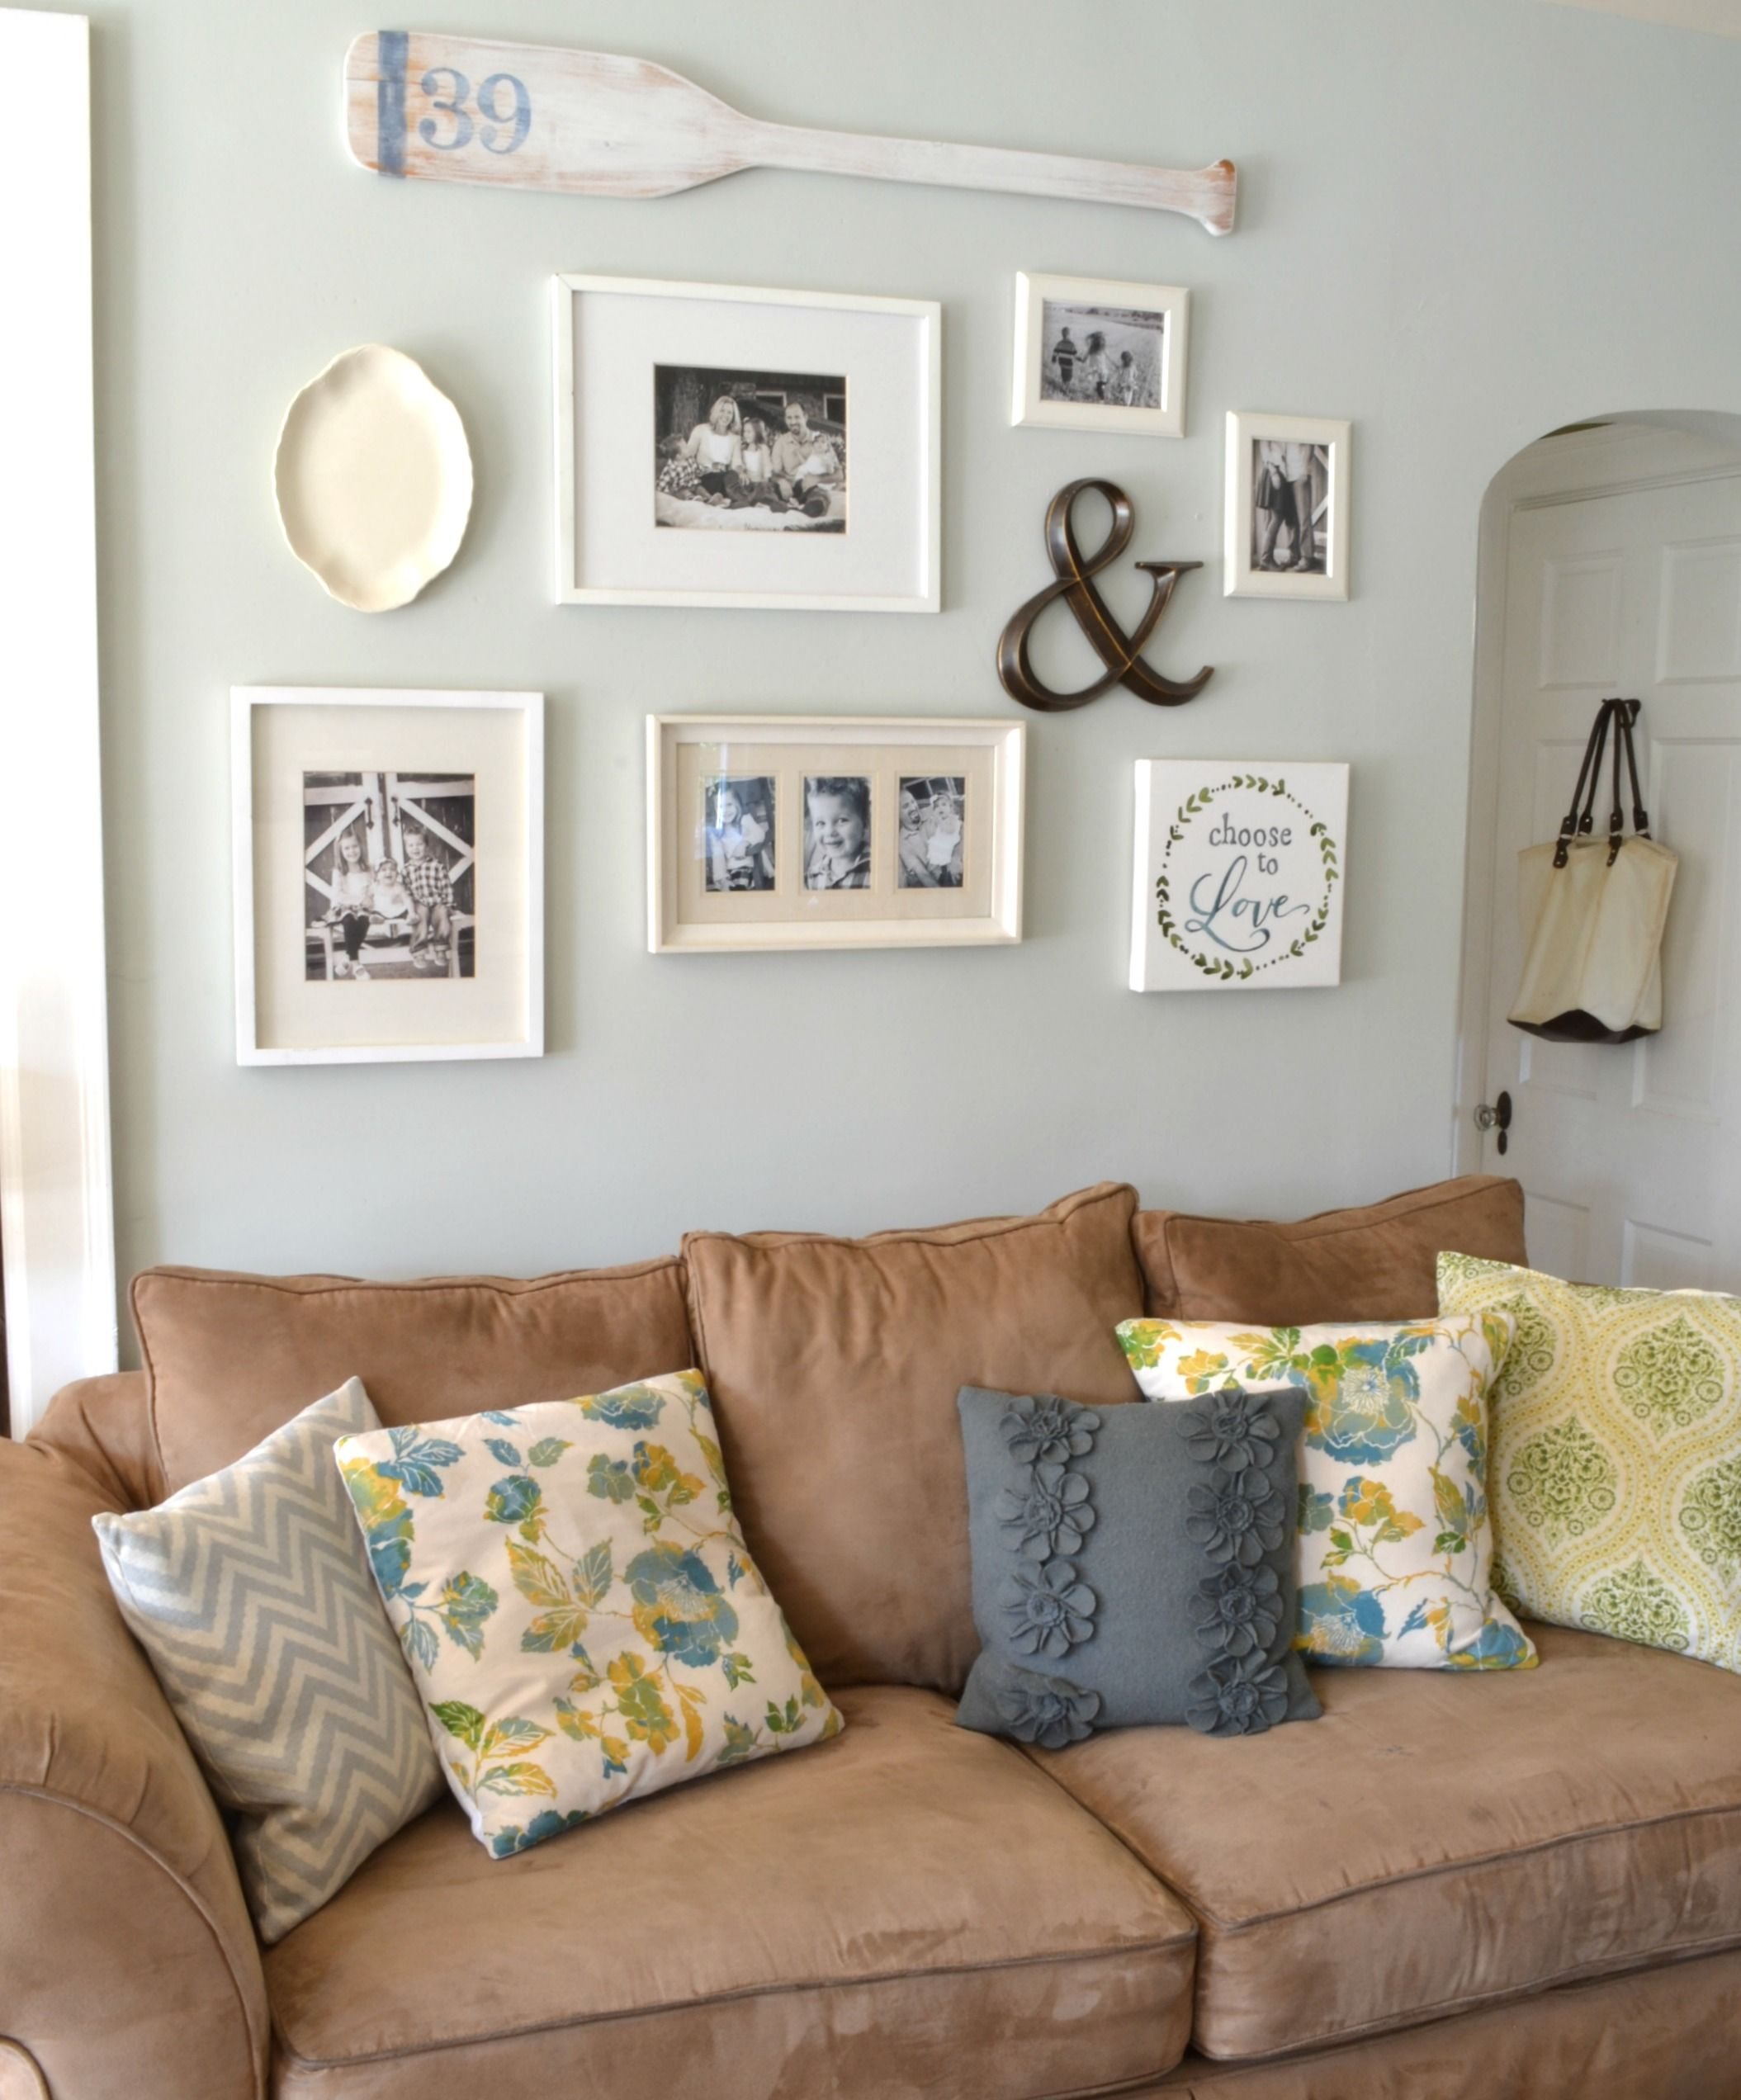 Gallery wall ideas my pink life gallery wall ideas for Behind the couch wall decor